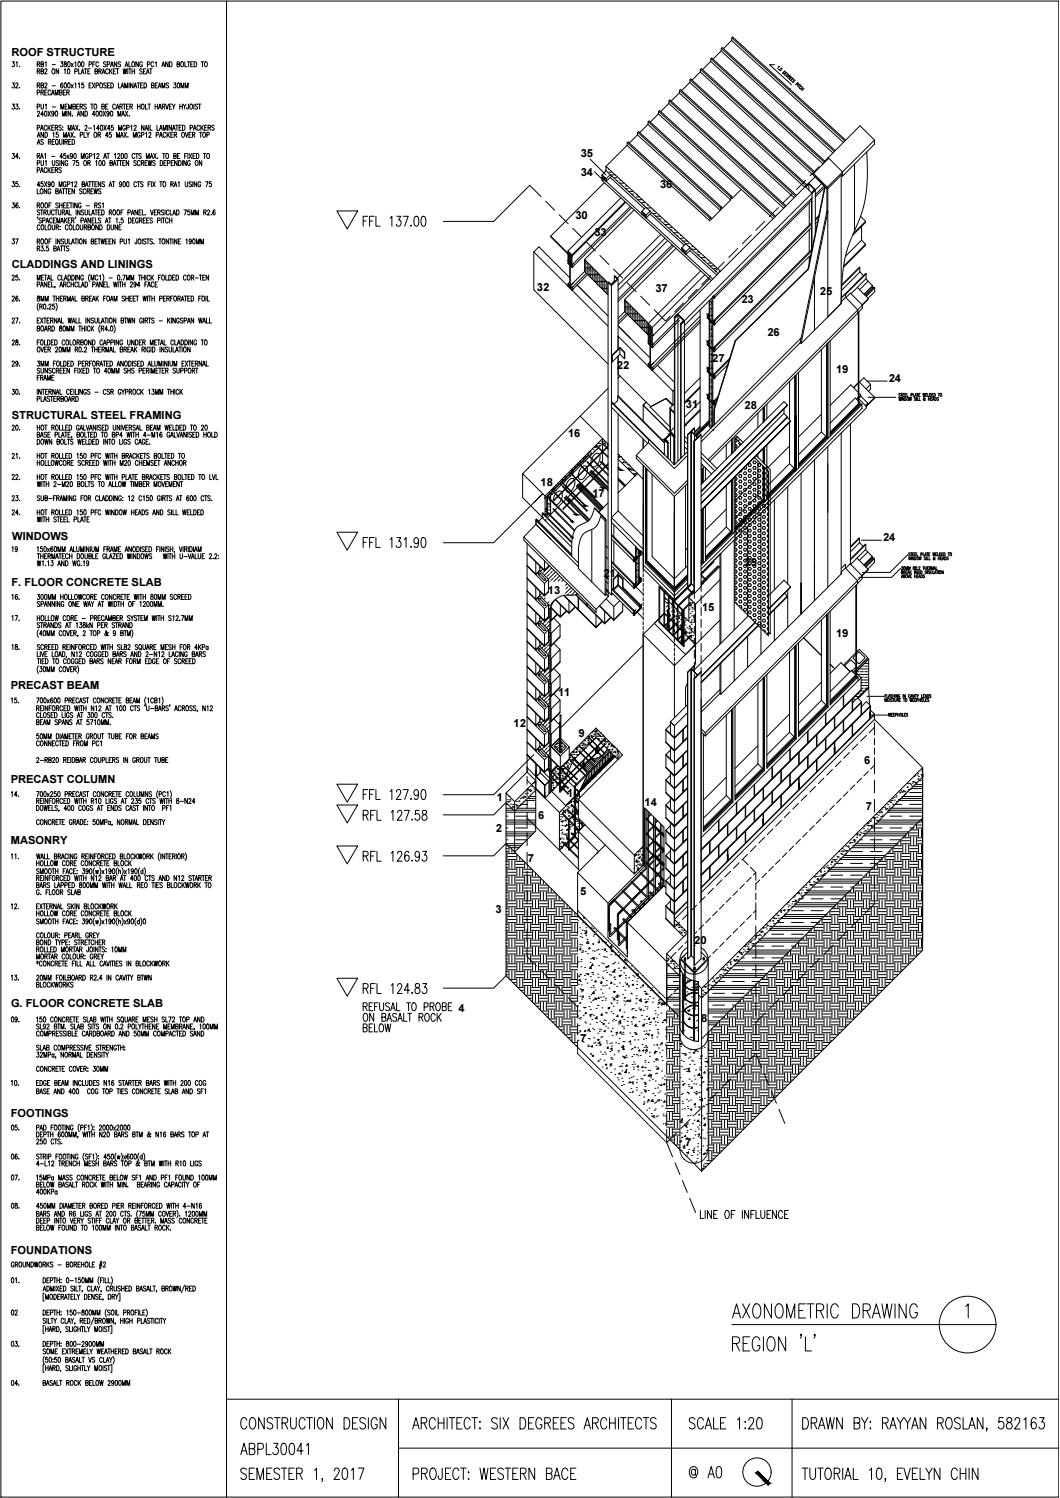 Construction Design Abpl30041 Axonometric Drawing By